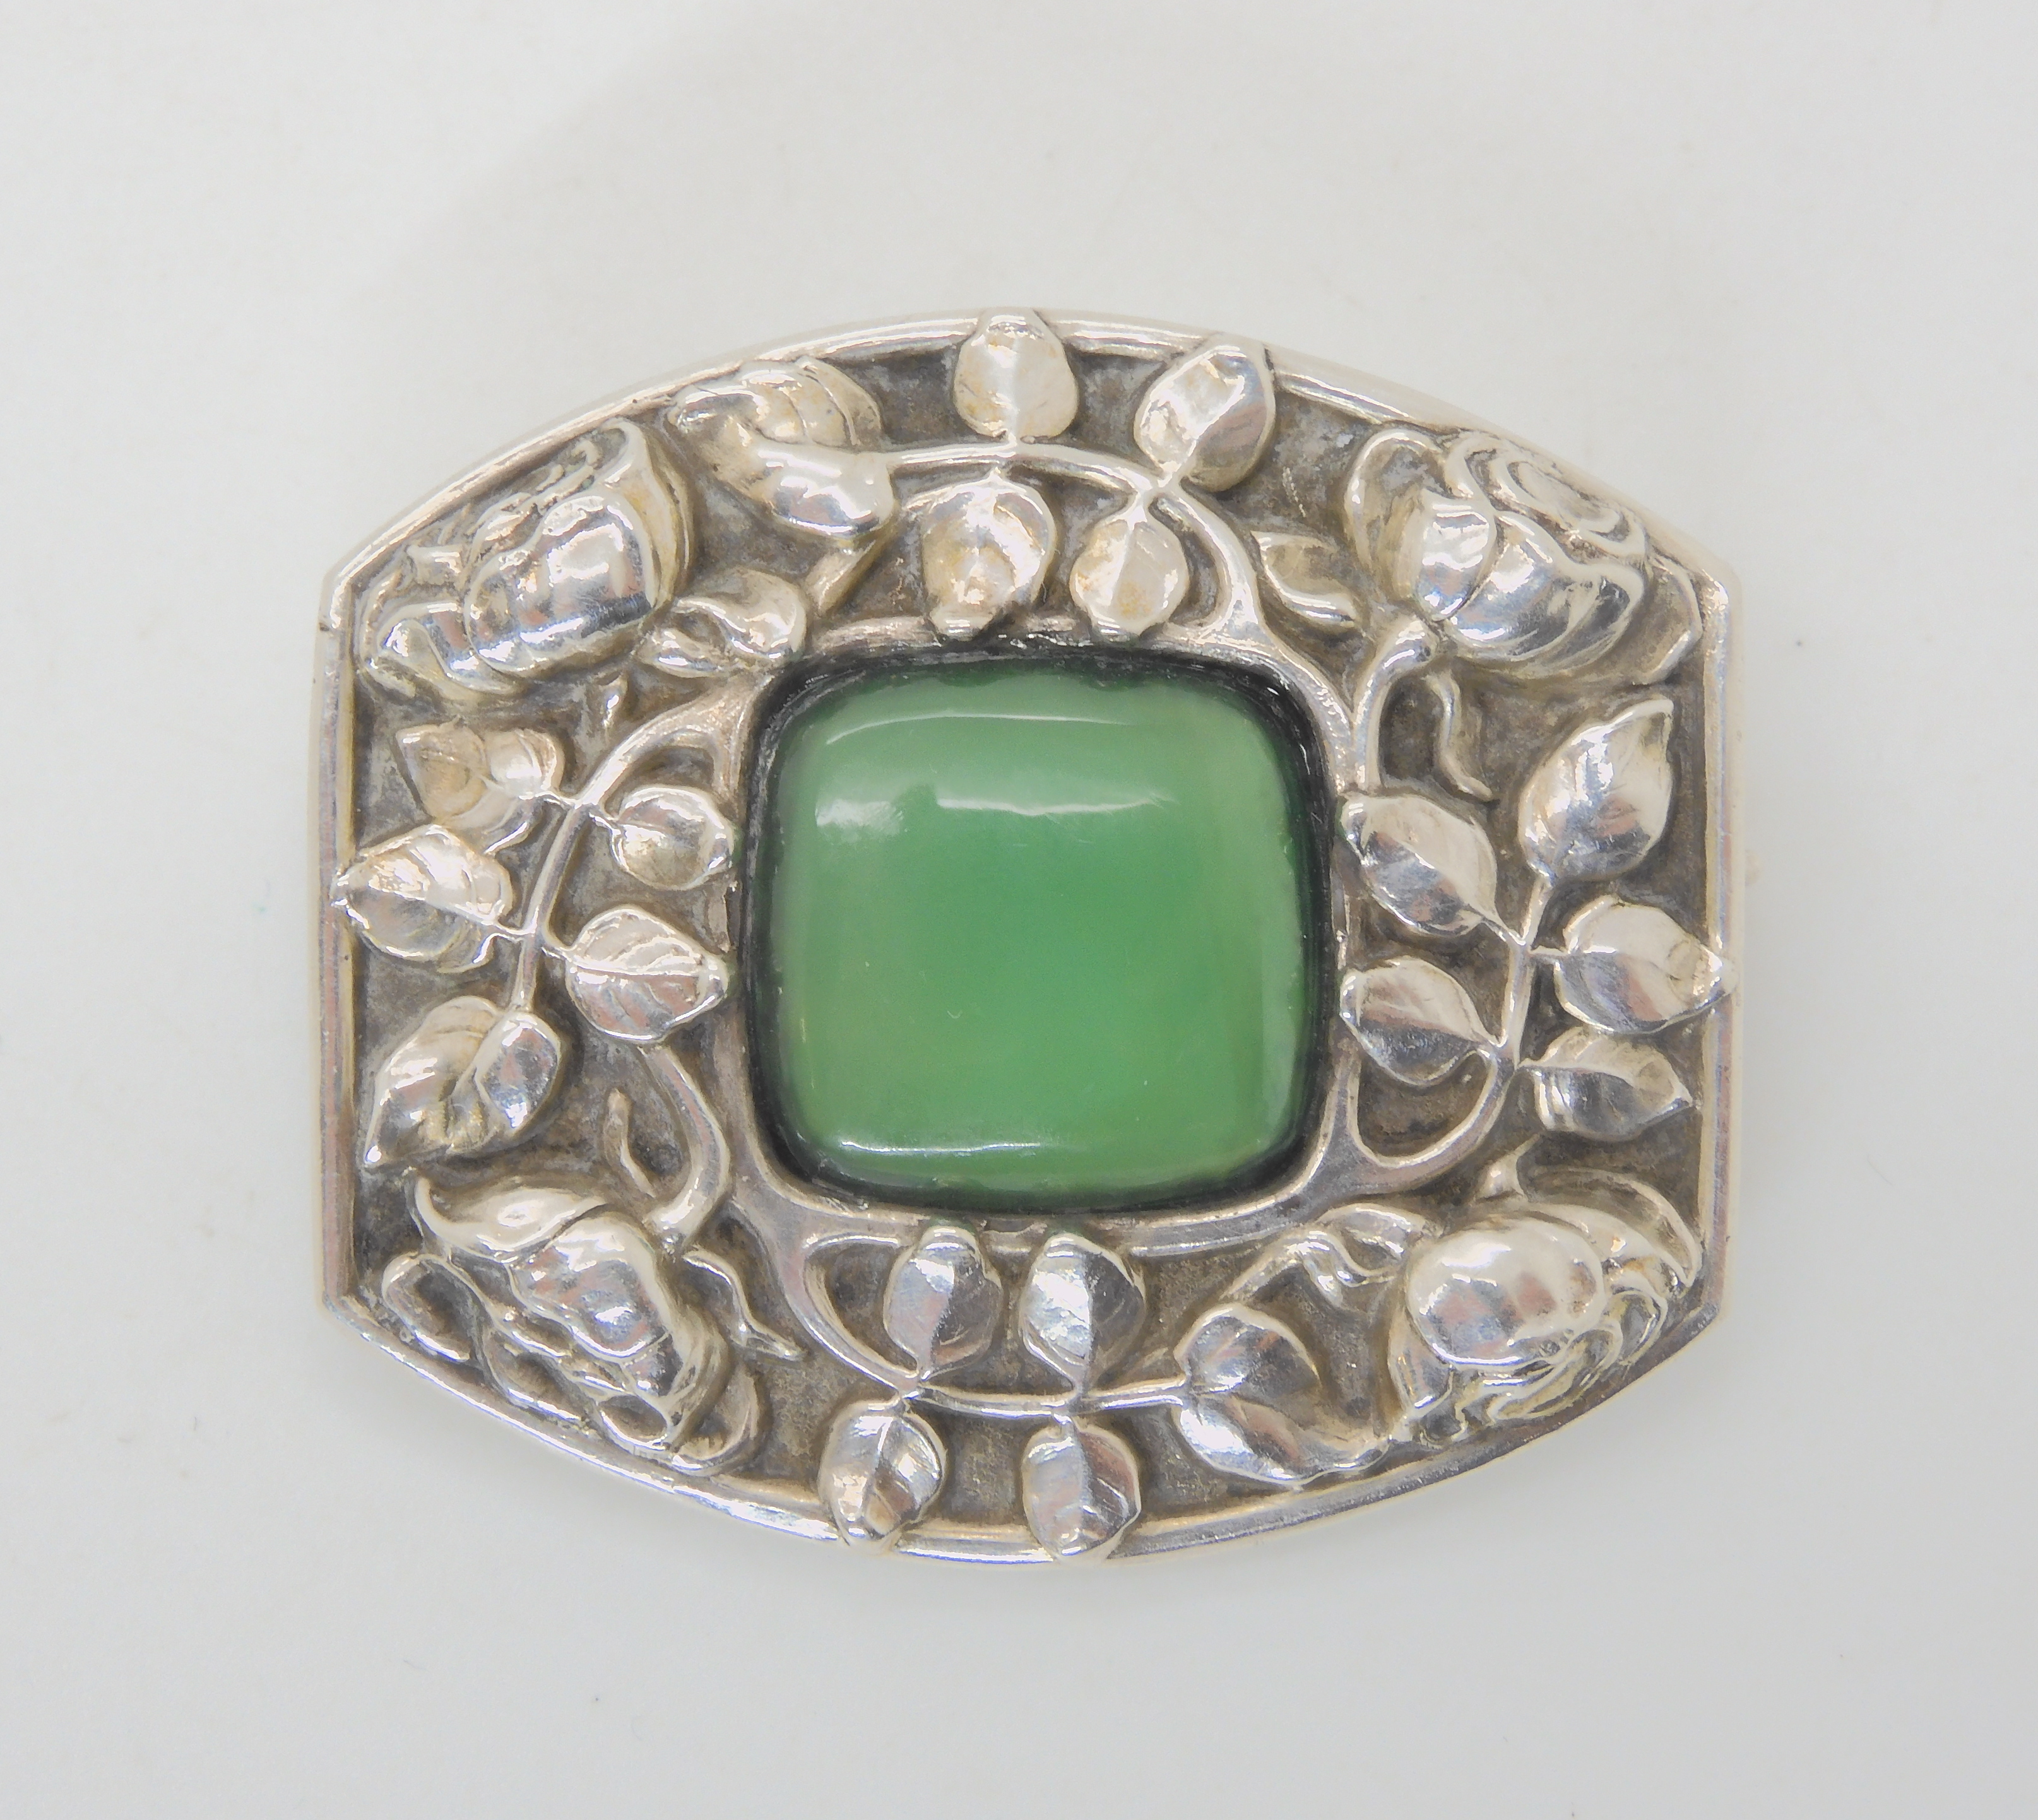 AN ART NOUVEAU BROOCH ATTIBUTED TO MAYER OF PFORZHEIM embossed with with jugendstil roses and set